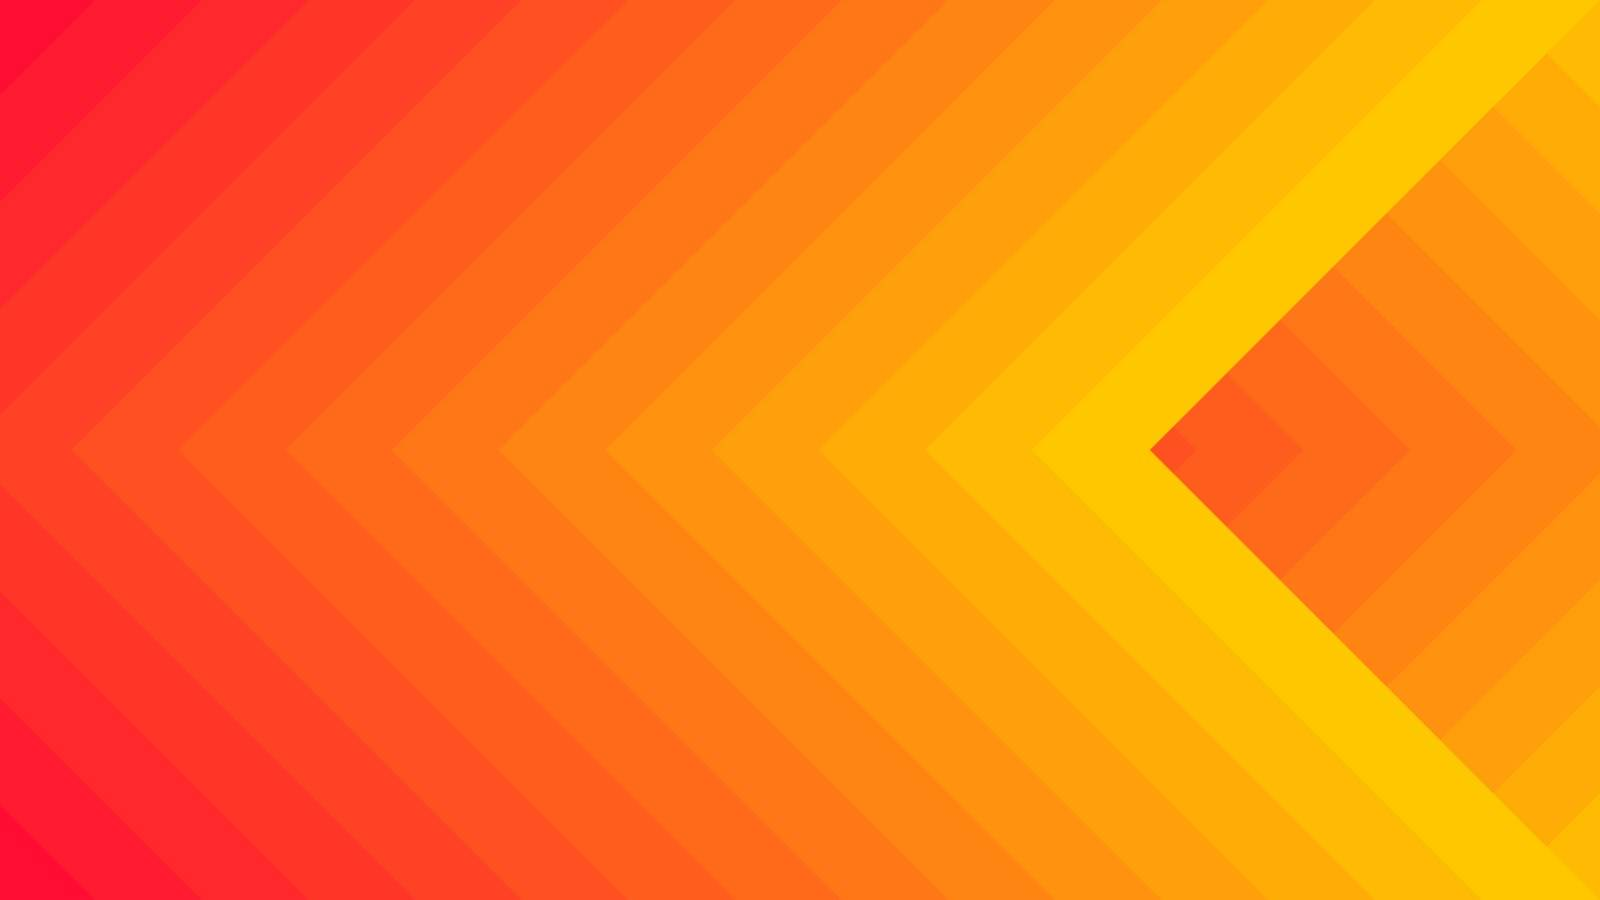 Red and Orange vector pattern with squares or rhombus. Graphic abstract illustration for website, poster, banner ads.